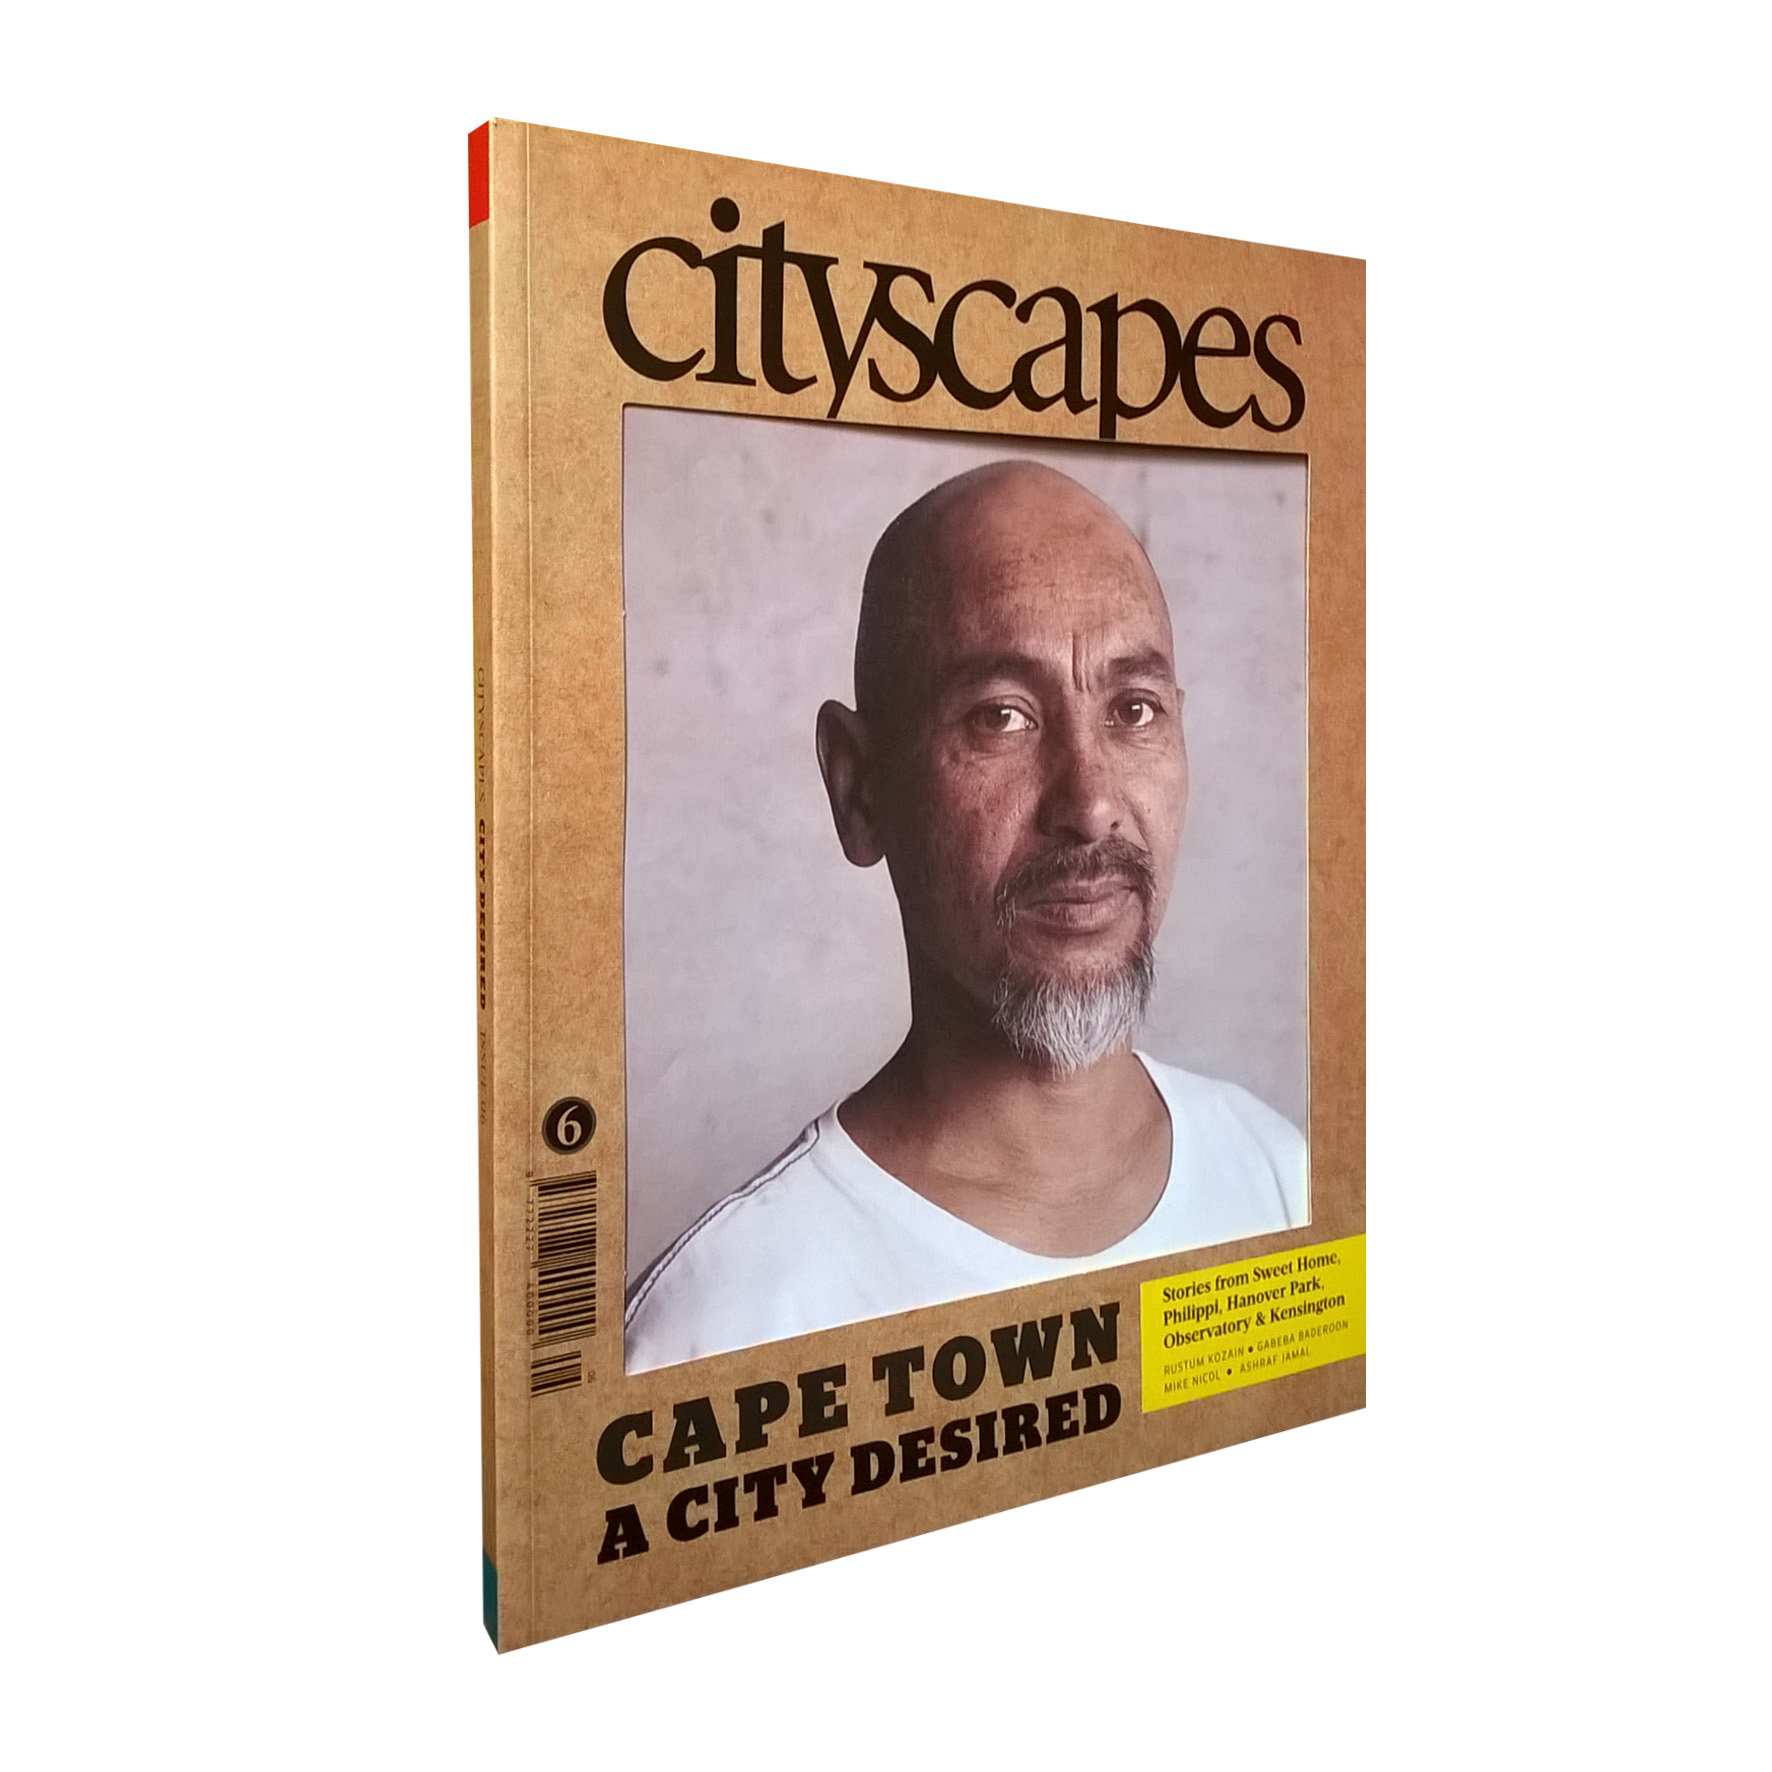 Cityscapes 6: Cape Town a City Desired (Africa Centre for Cities, February 2015) CIR06